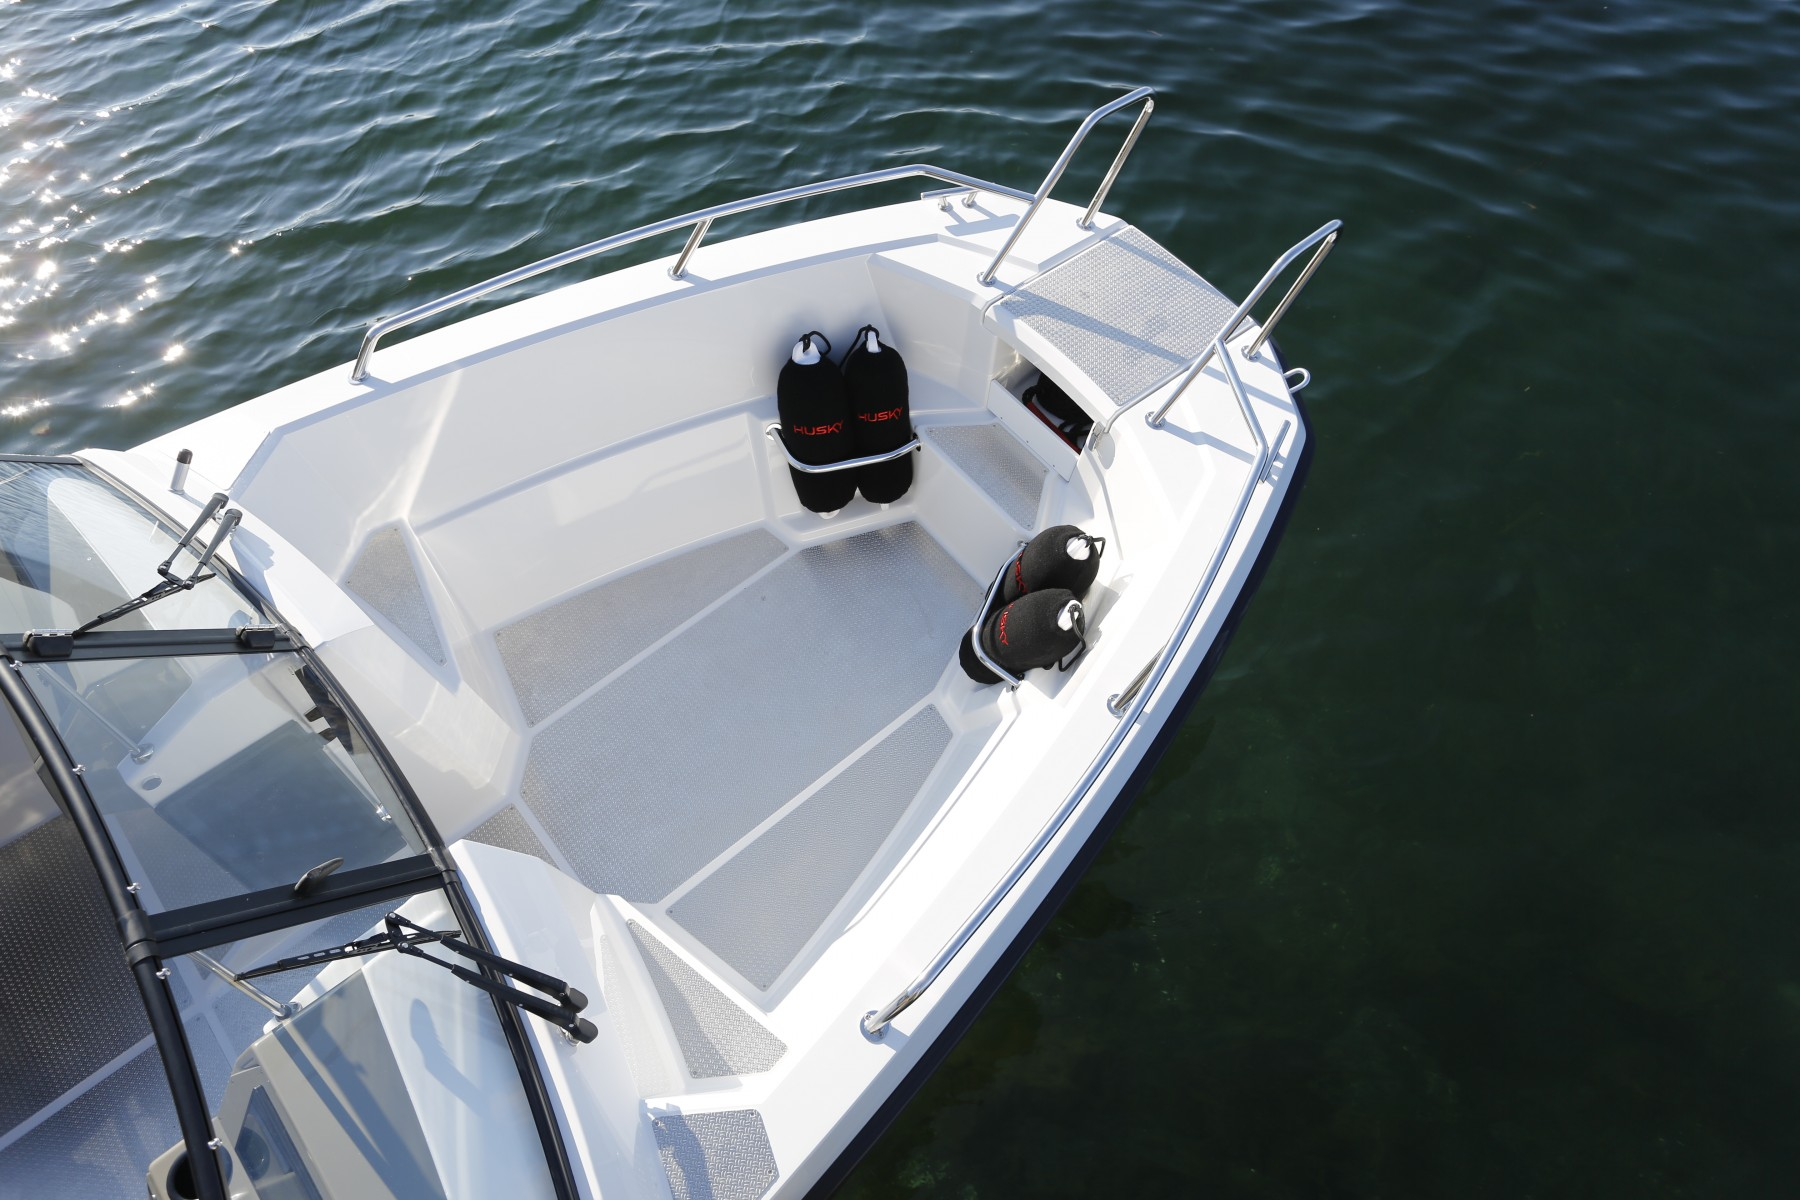 Husky boats by finnmaster R7 r series - idealboat com